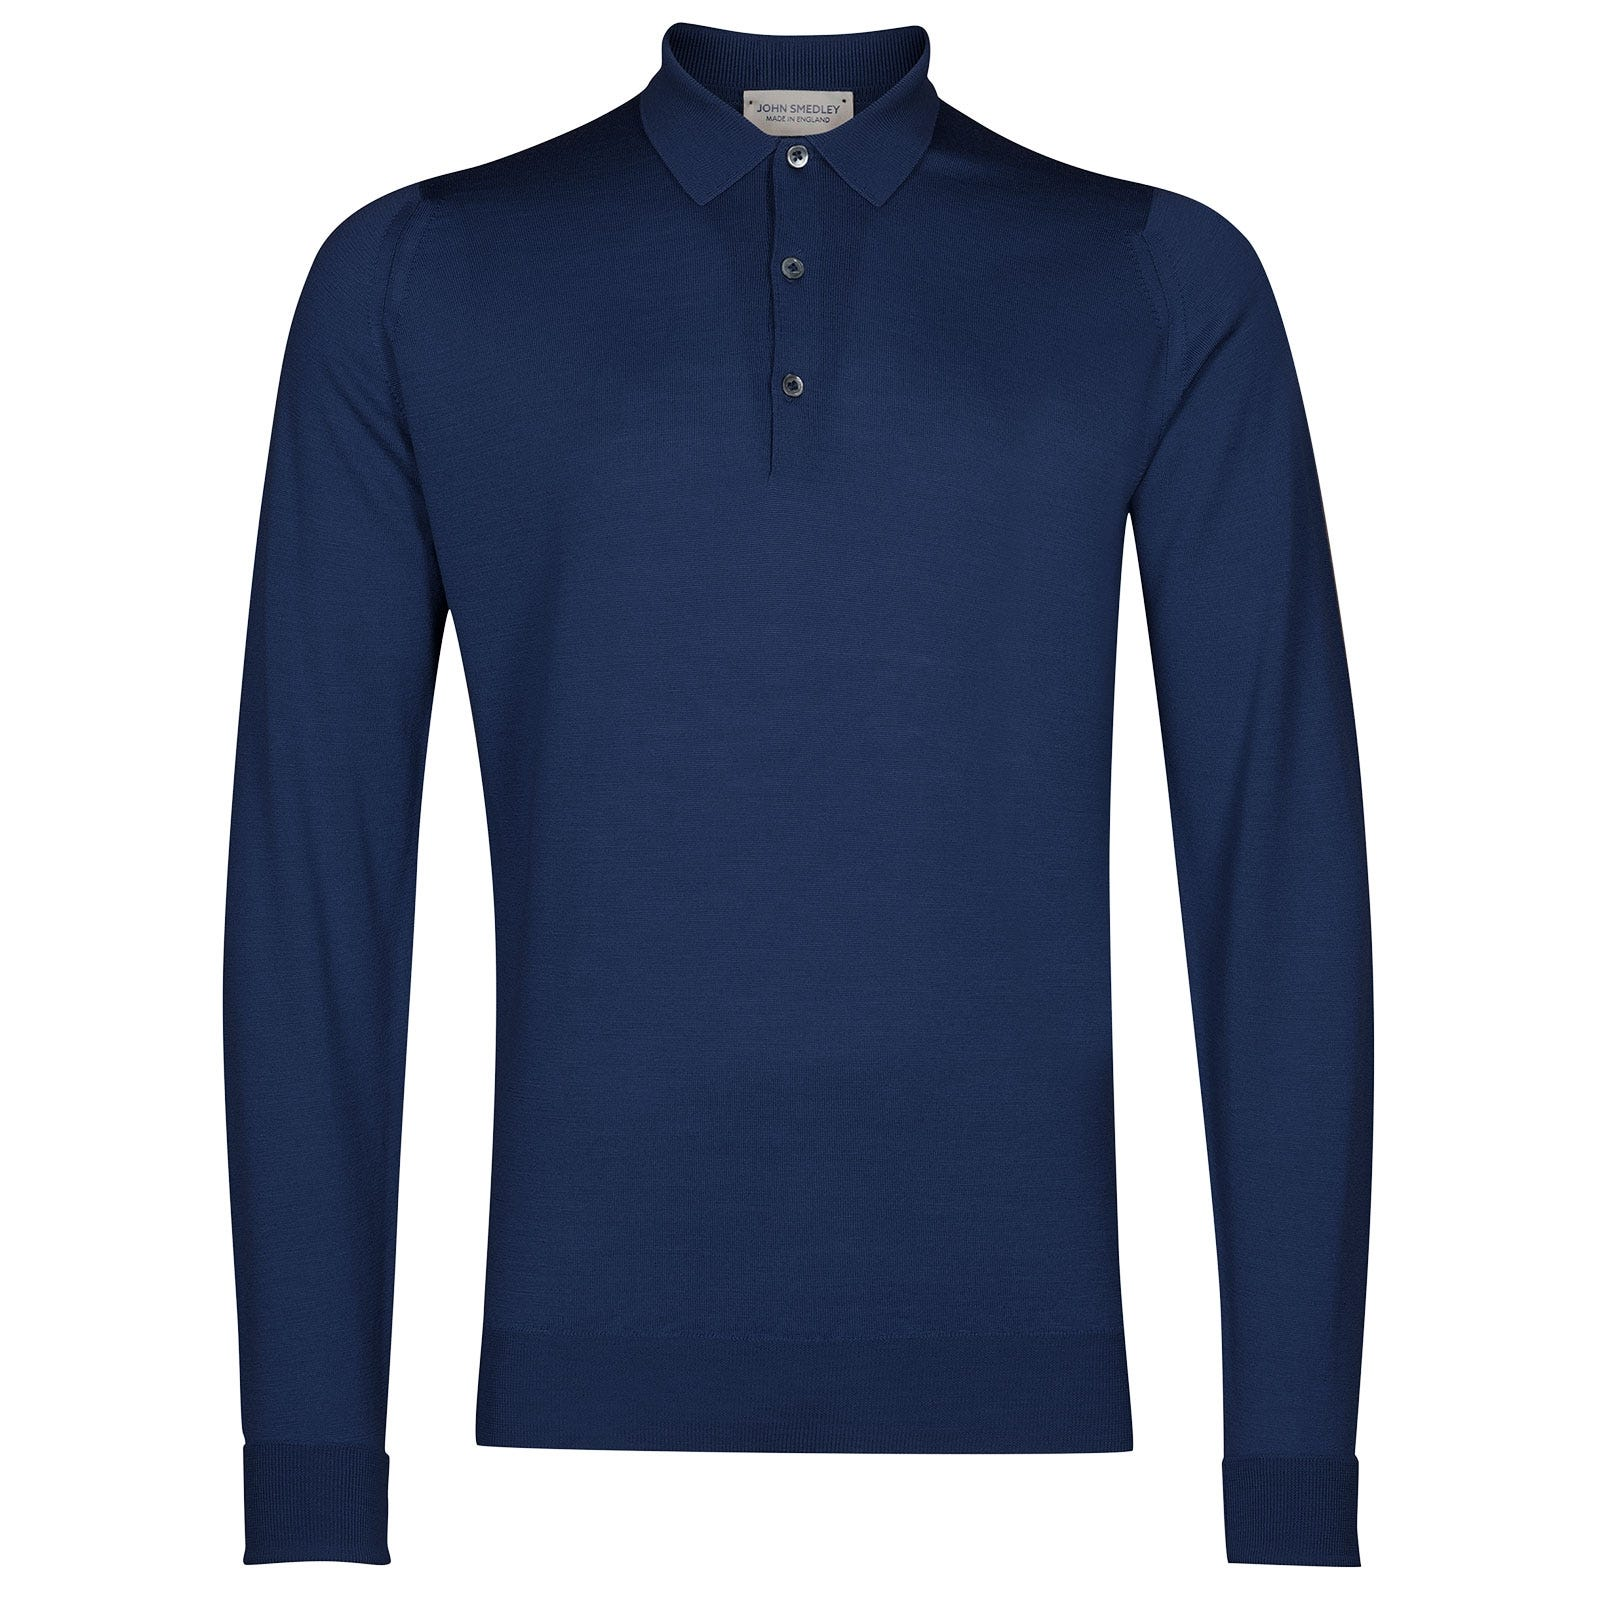 John Smedley Cotswold Merino Wool Shirt in Magnetic Cobalt-XL